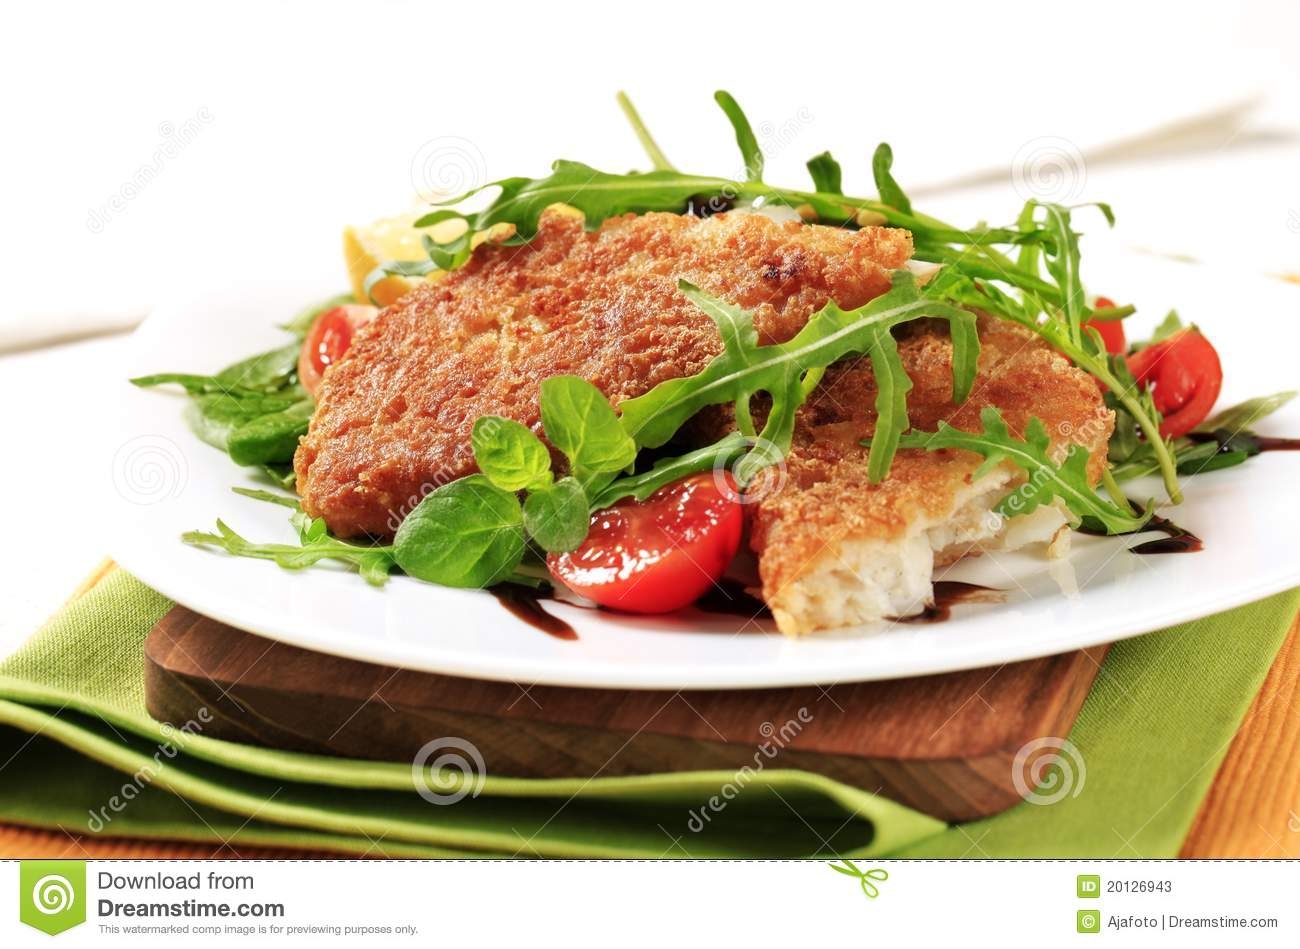 Fried fish and fresh salad stock photos image 20126943 for Fish and salad